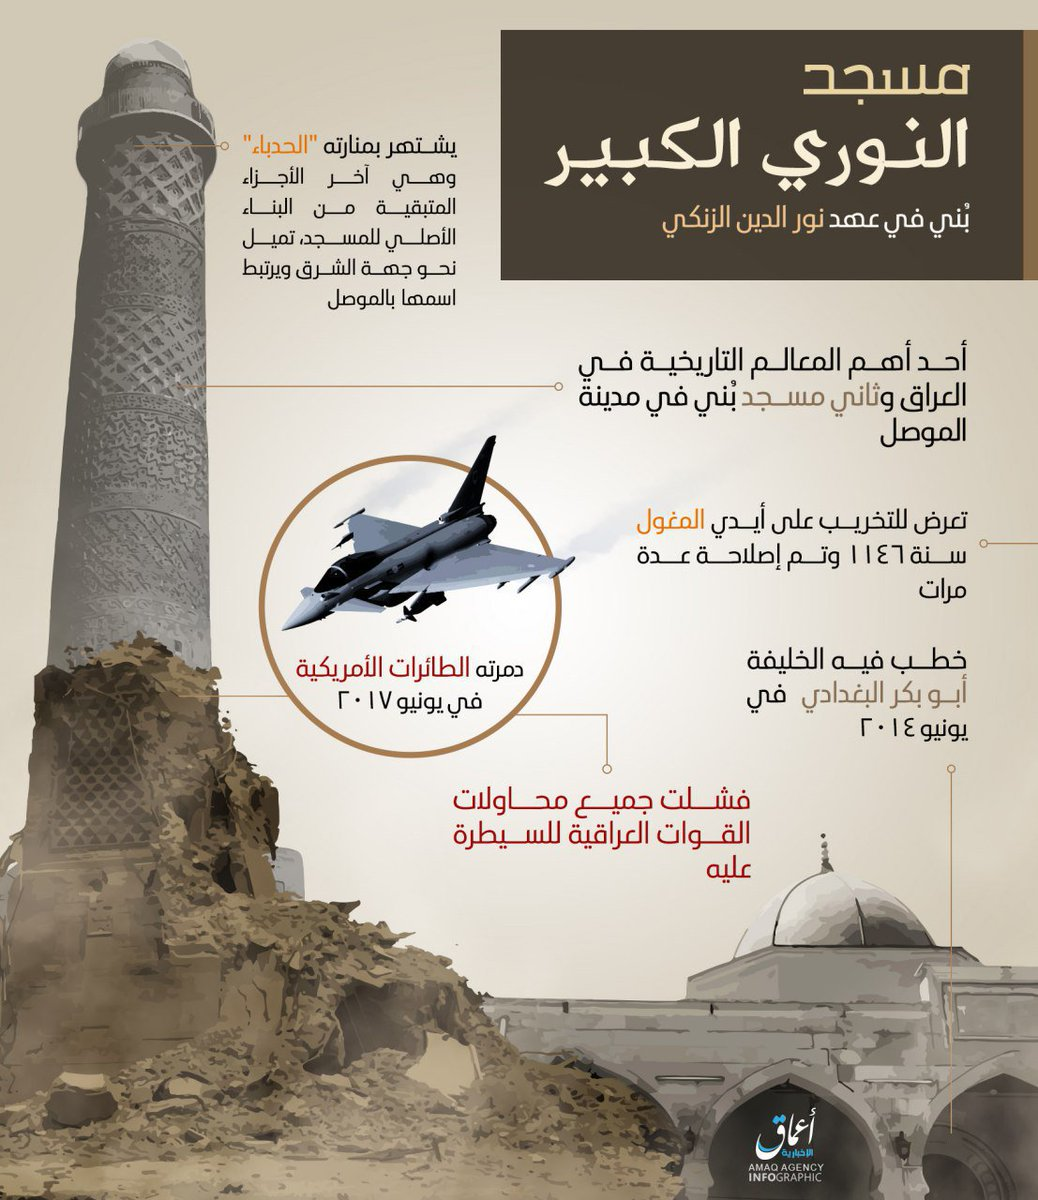 #Amaq really tries its best to maintain the airstrike narrative surrounding #Mosul mosque<br>http://pic.twitter.com/sLPRhakX0j